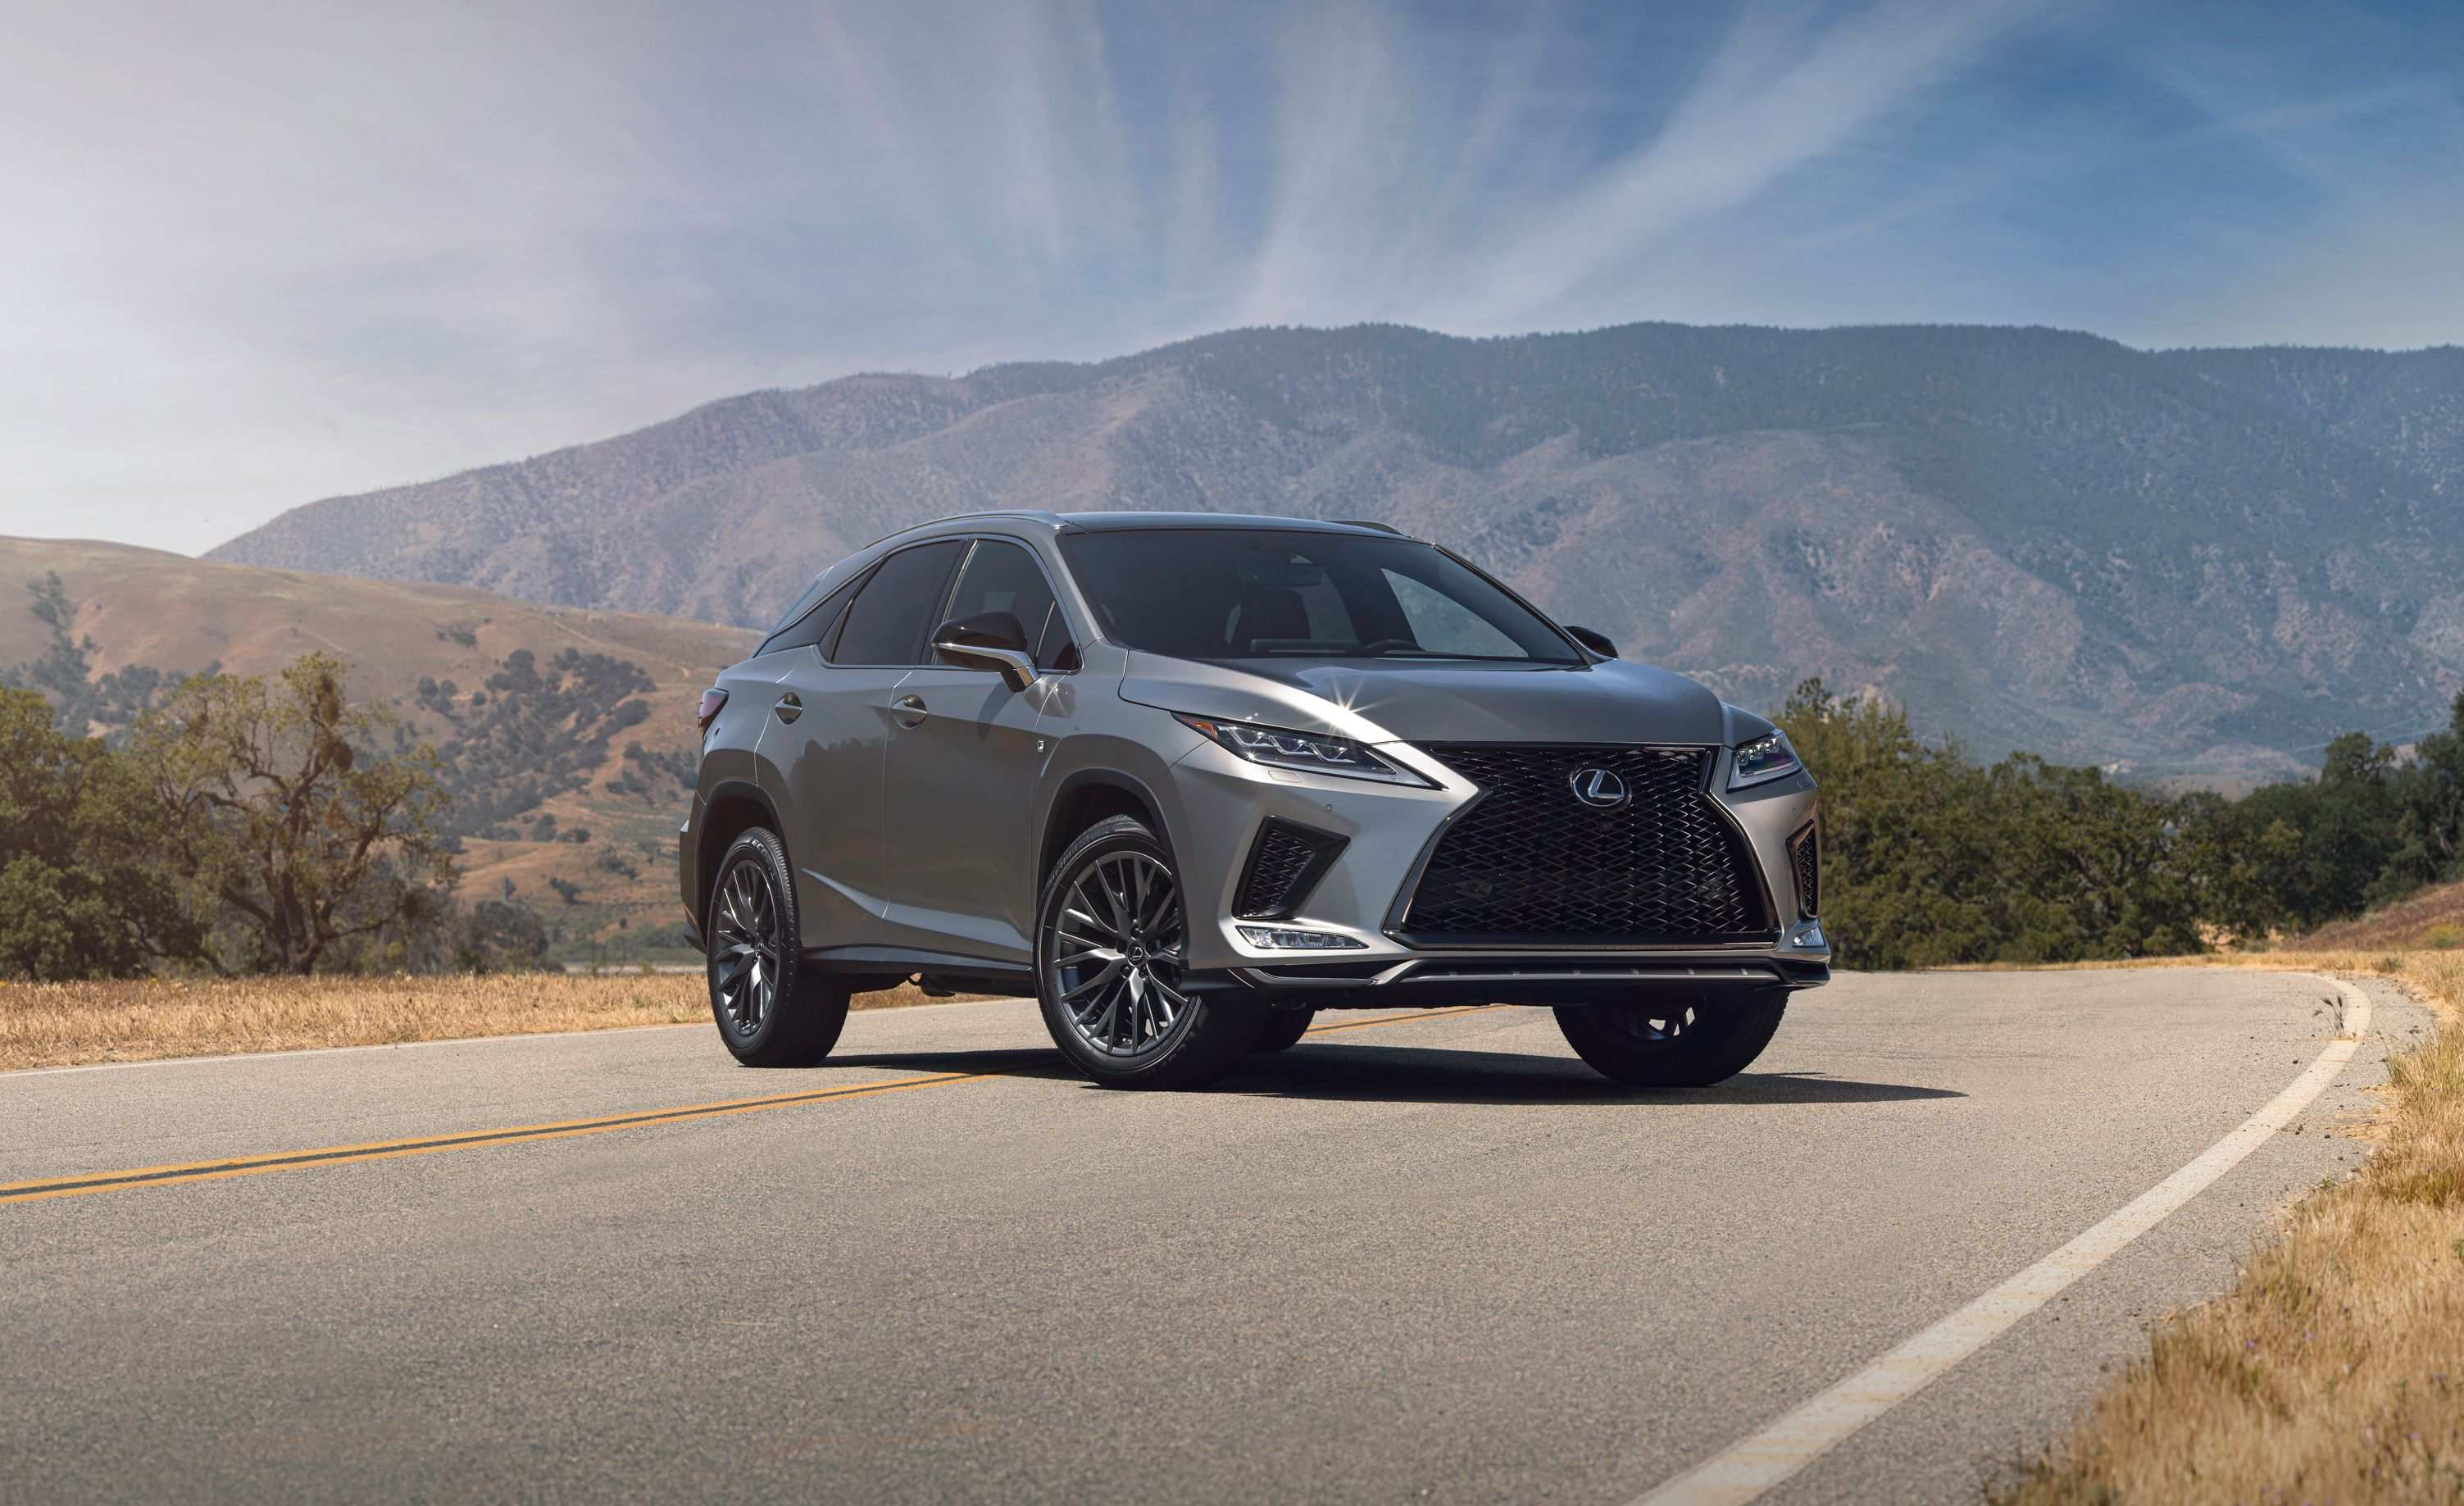 25 Great When Will 2020 Lexus Suv Come Out Redesign and Concept by When Will 2020 Lexus Suv Come Out